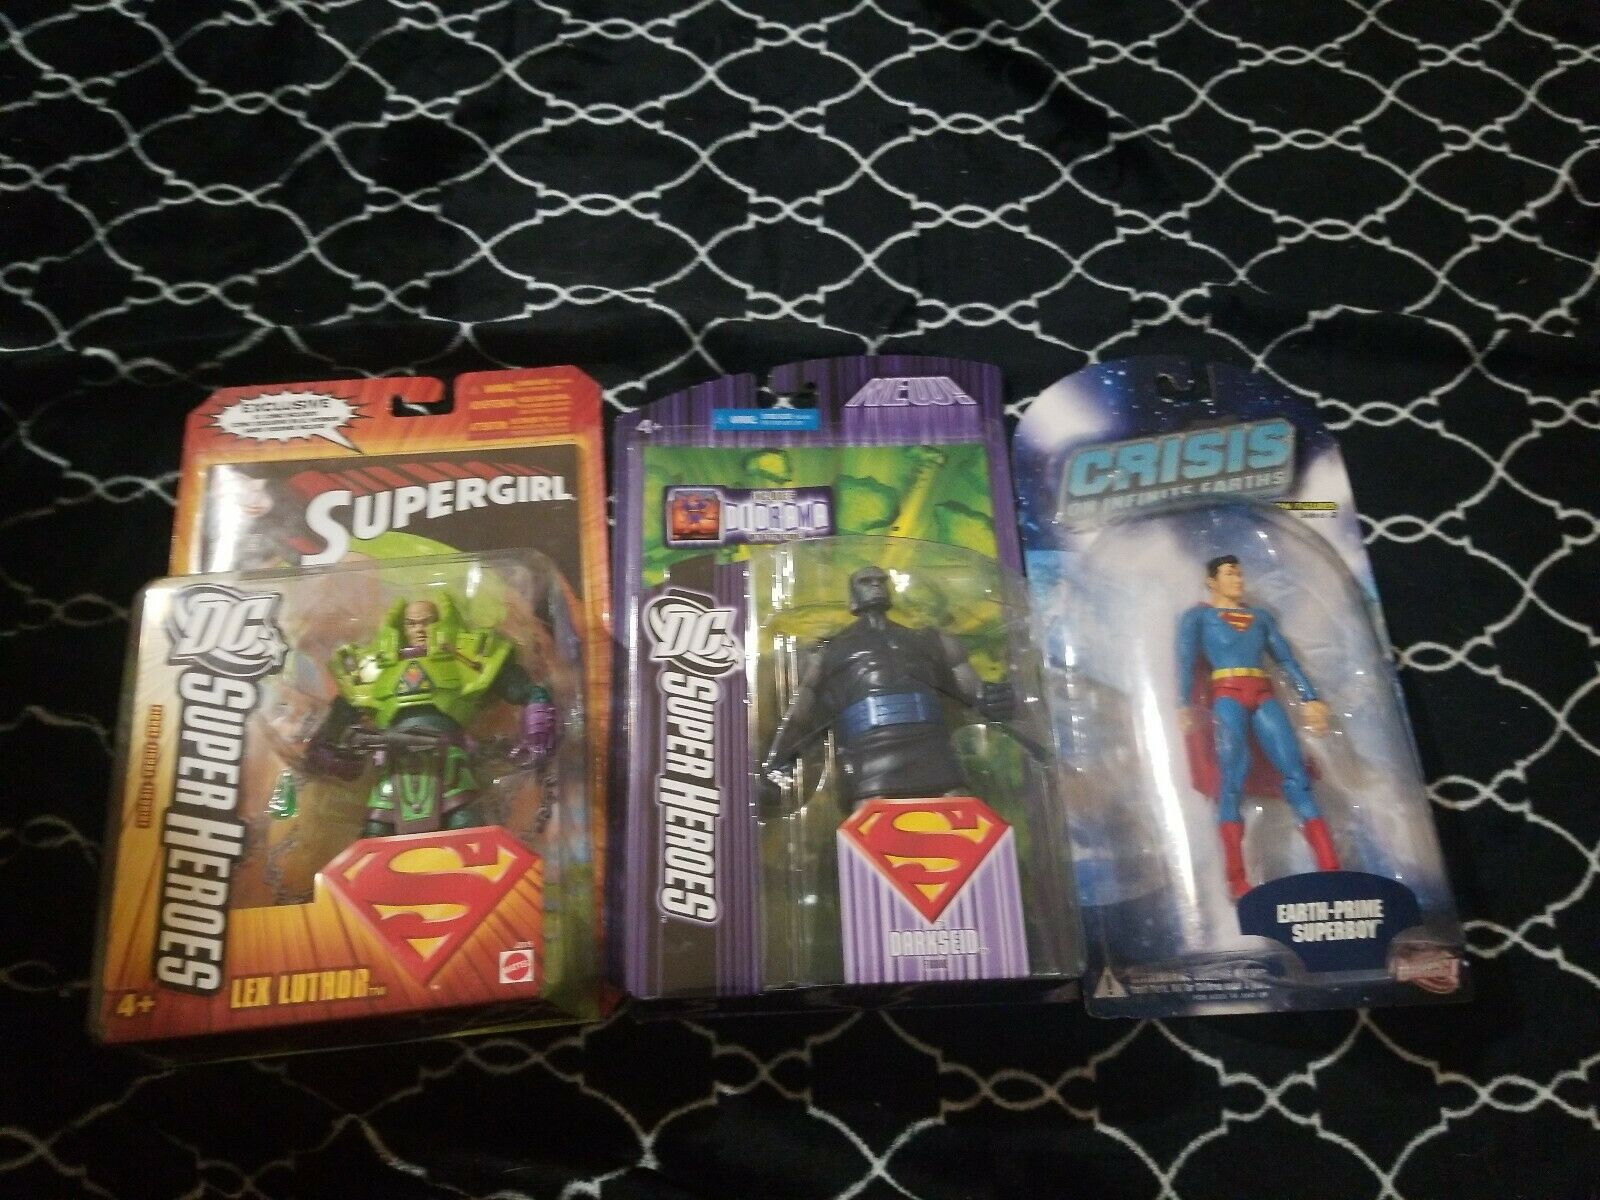 DC SUPER EROI LOTTO NERO Darkseid, Lex Luthor e SUPERBOY cifra